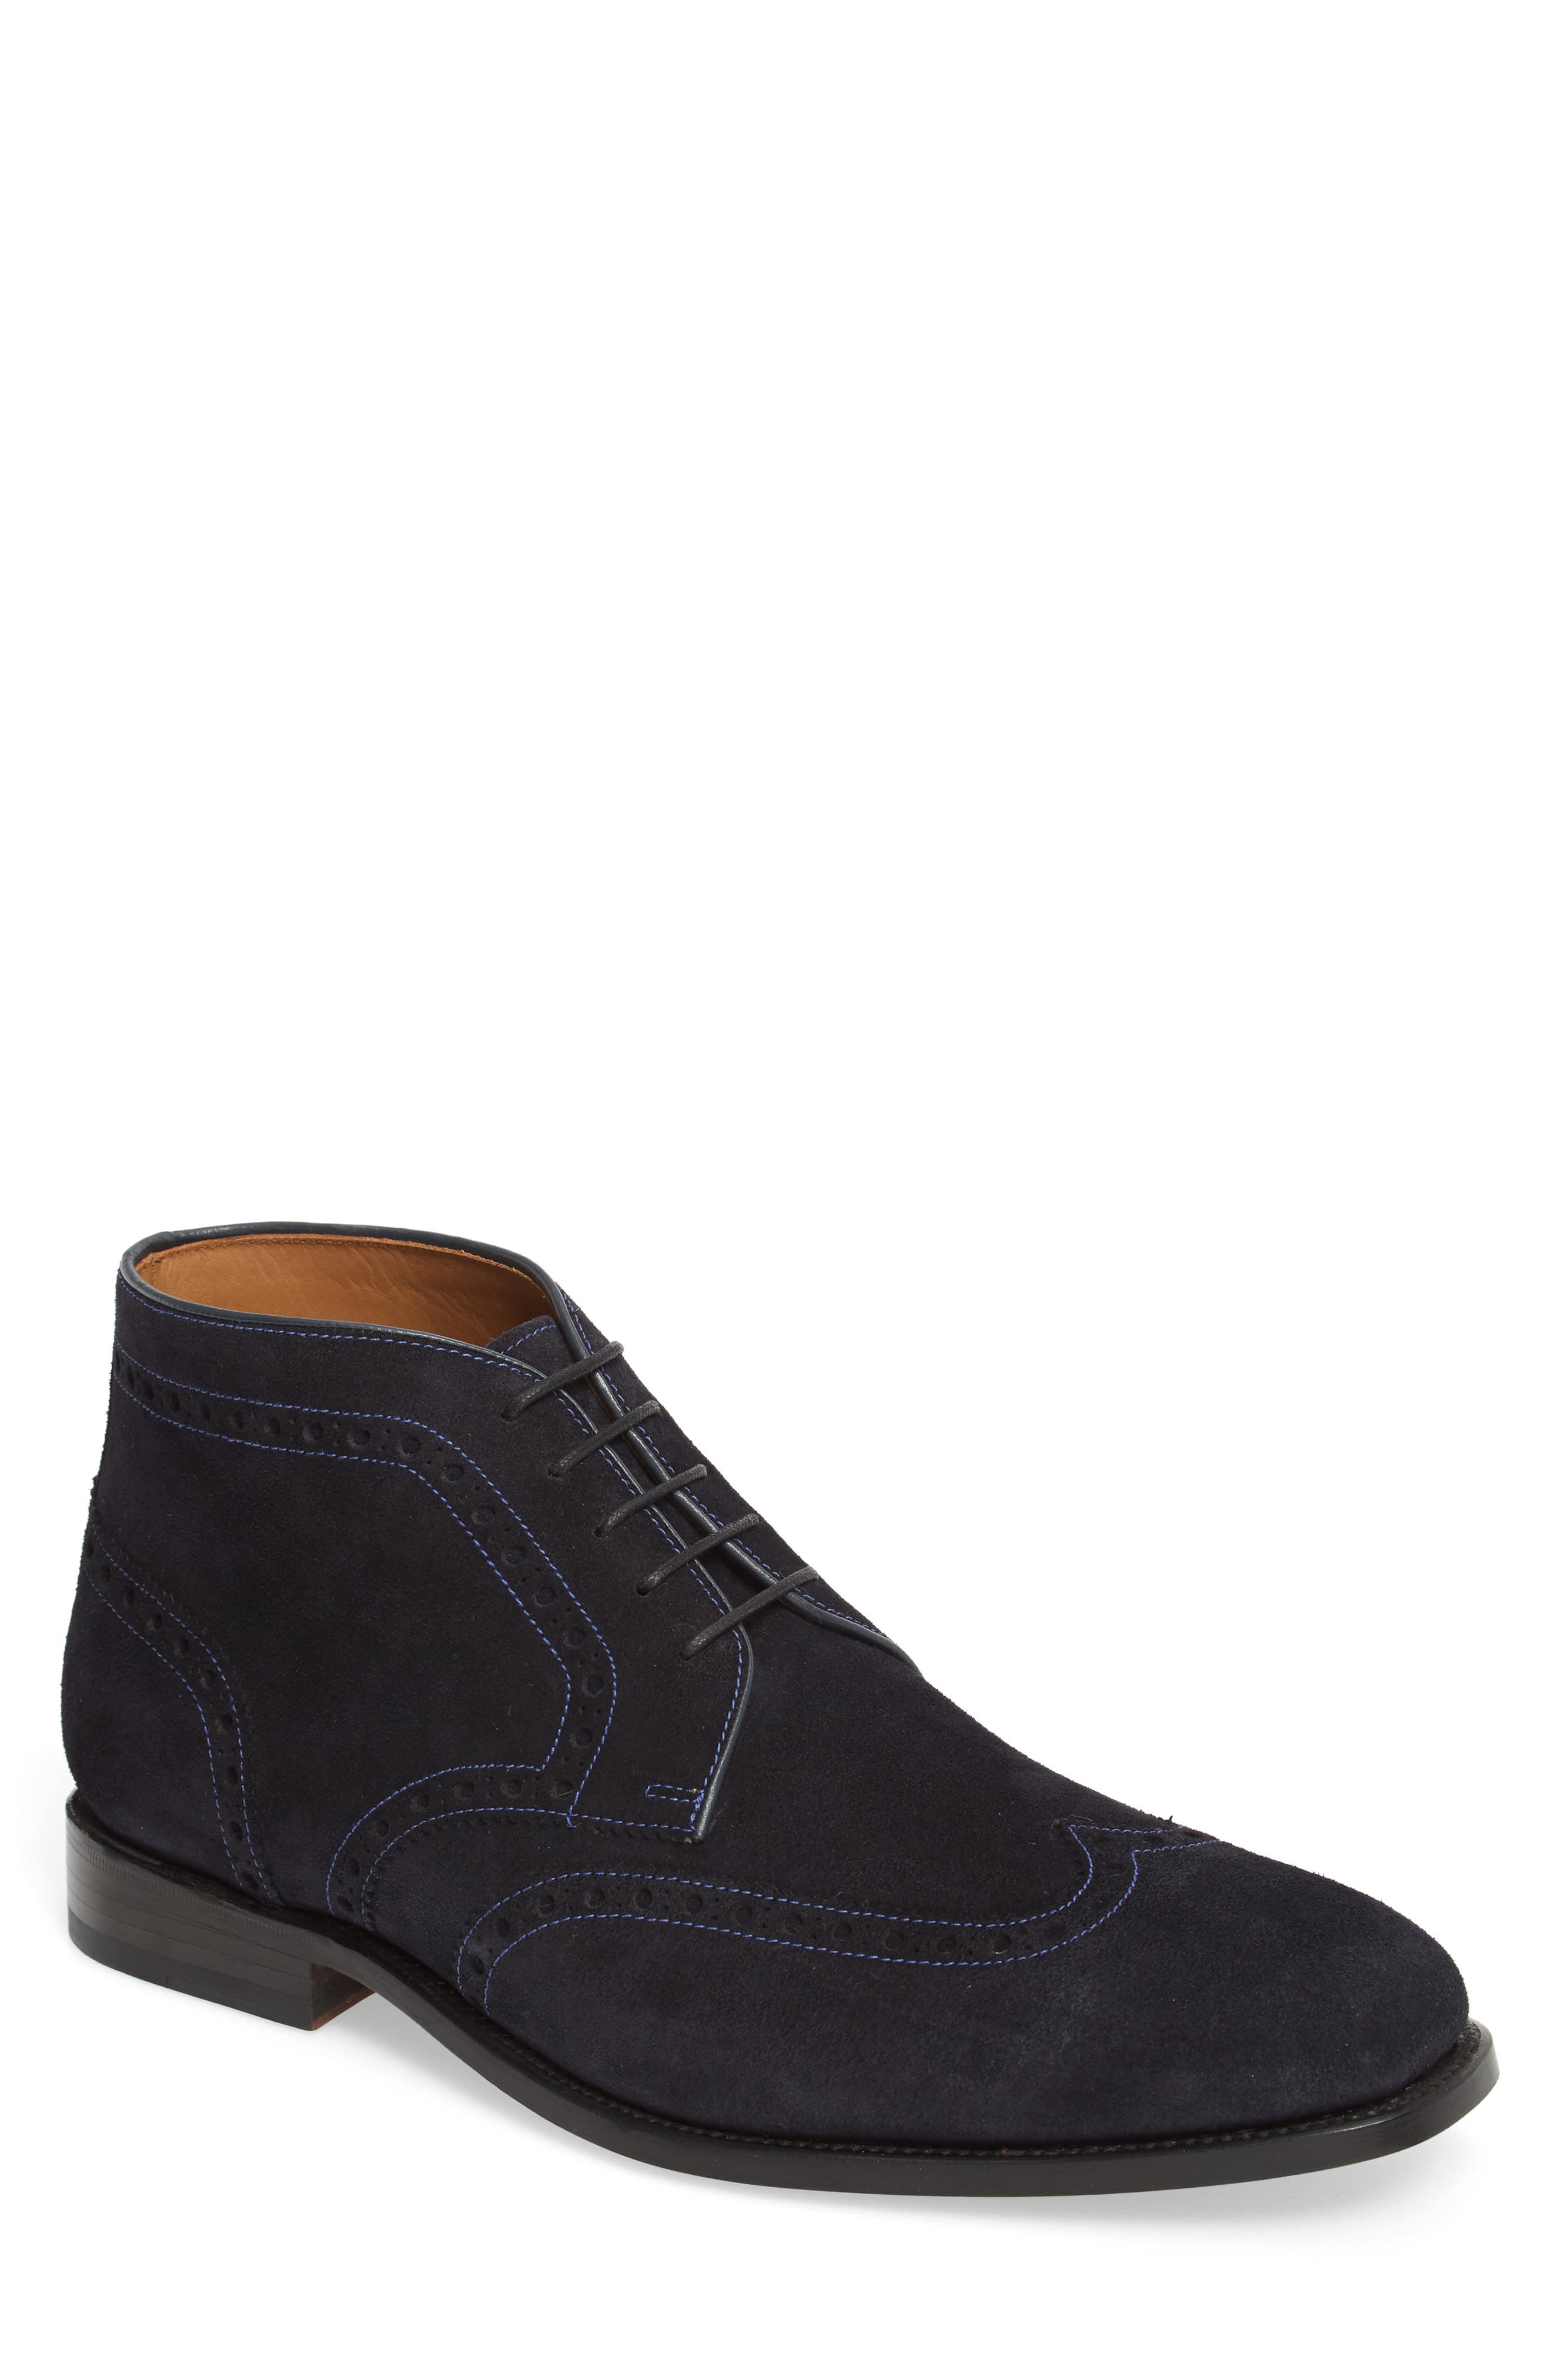 Presidio Wingtip Boot,                         Main,                         color, NAVY